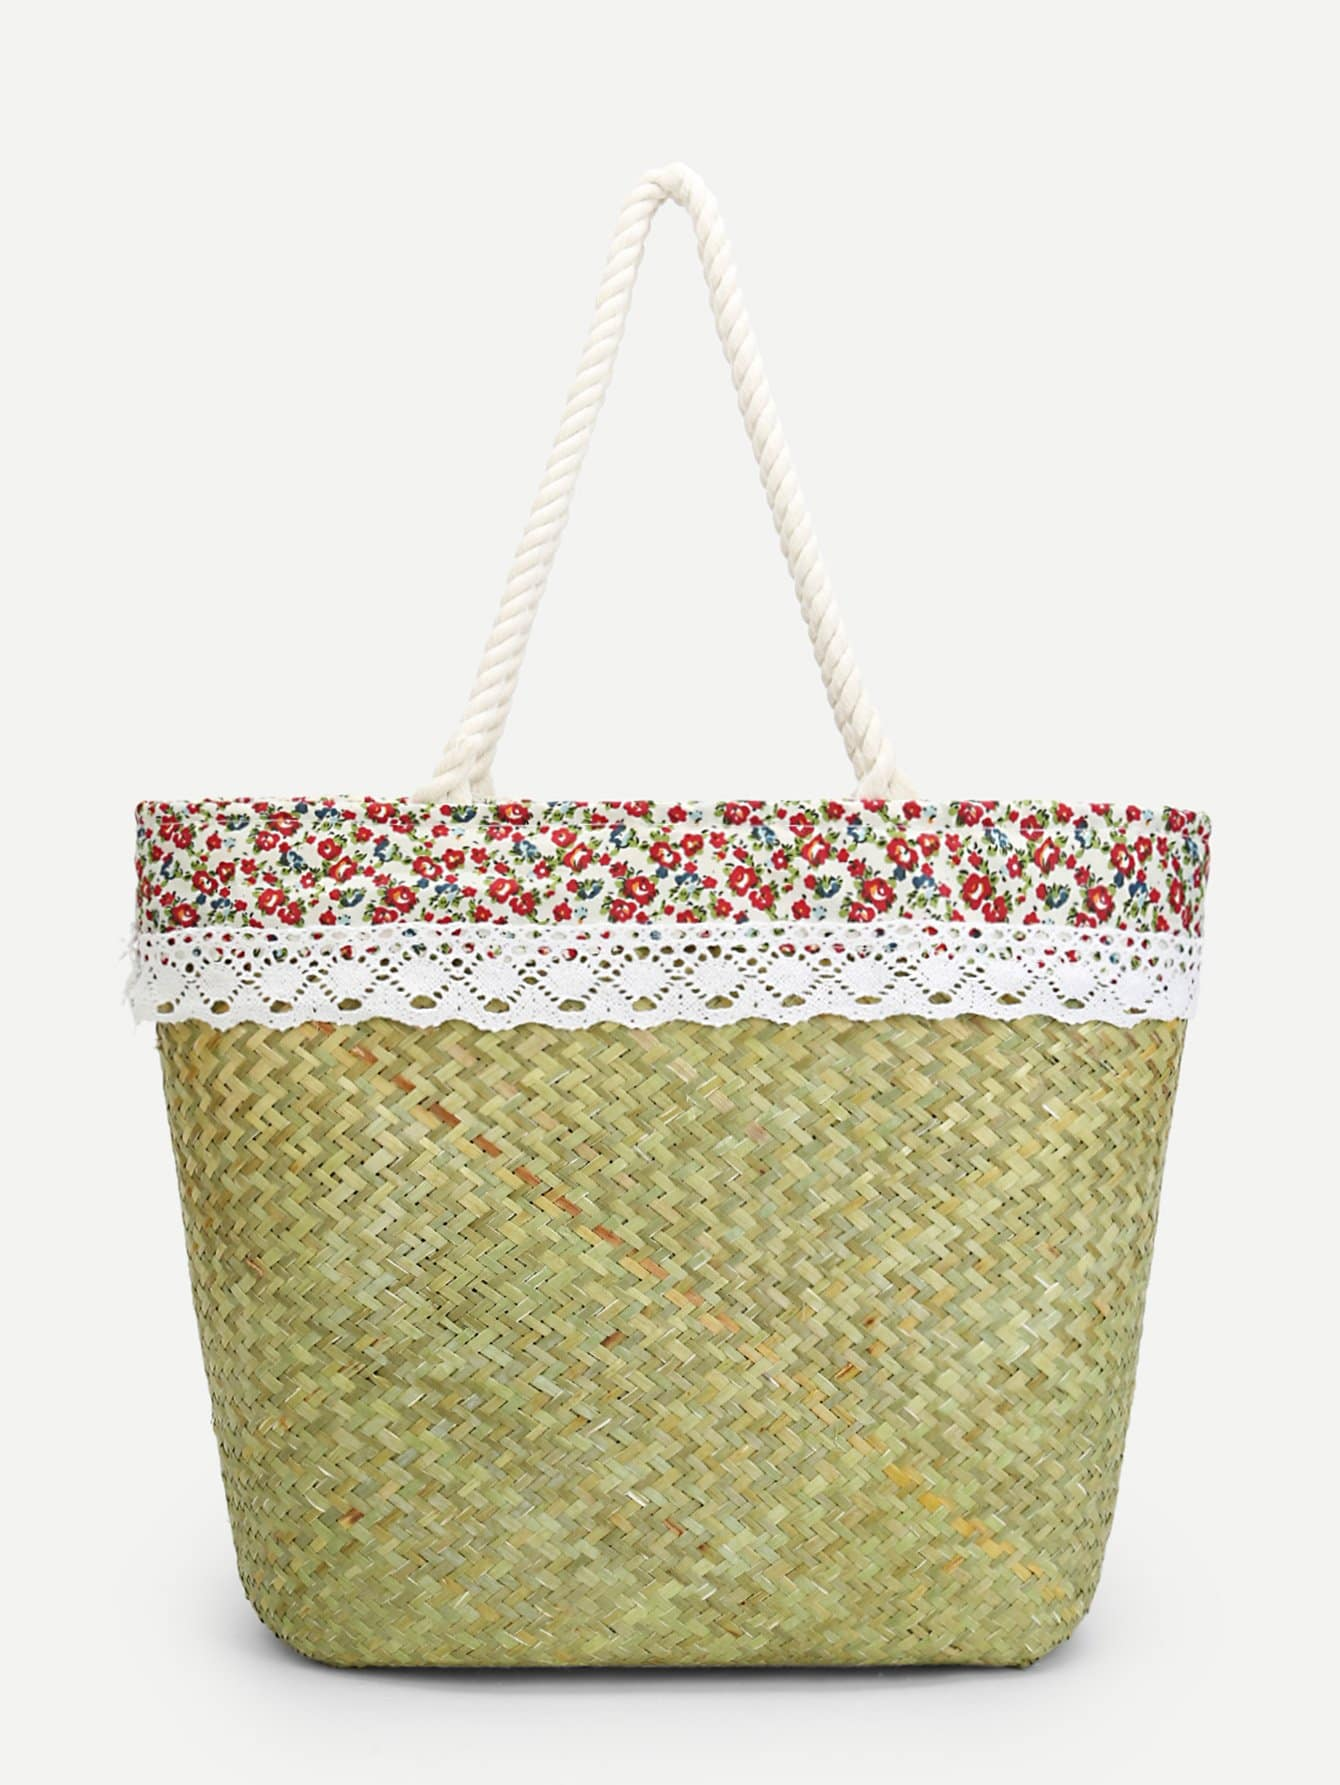 Calico Print Woven Design Straw Tote Bag woven design straw flat sandals